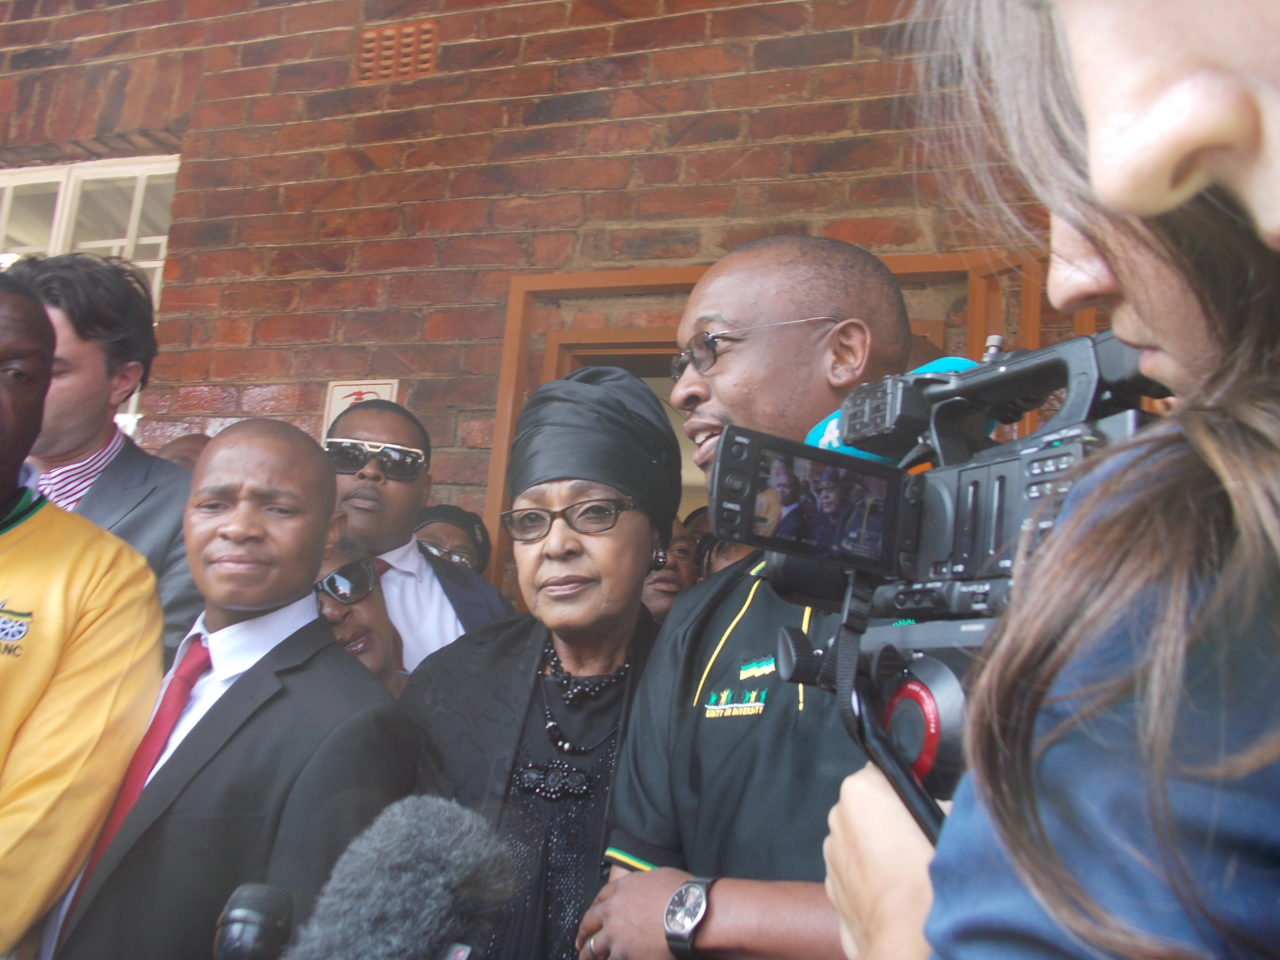 Winnie Mandela during the 2014 elections in Soweto. Photo by Bonginkosi Ntiwane